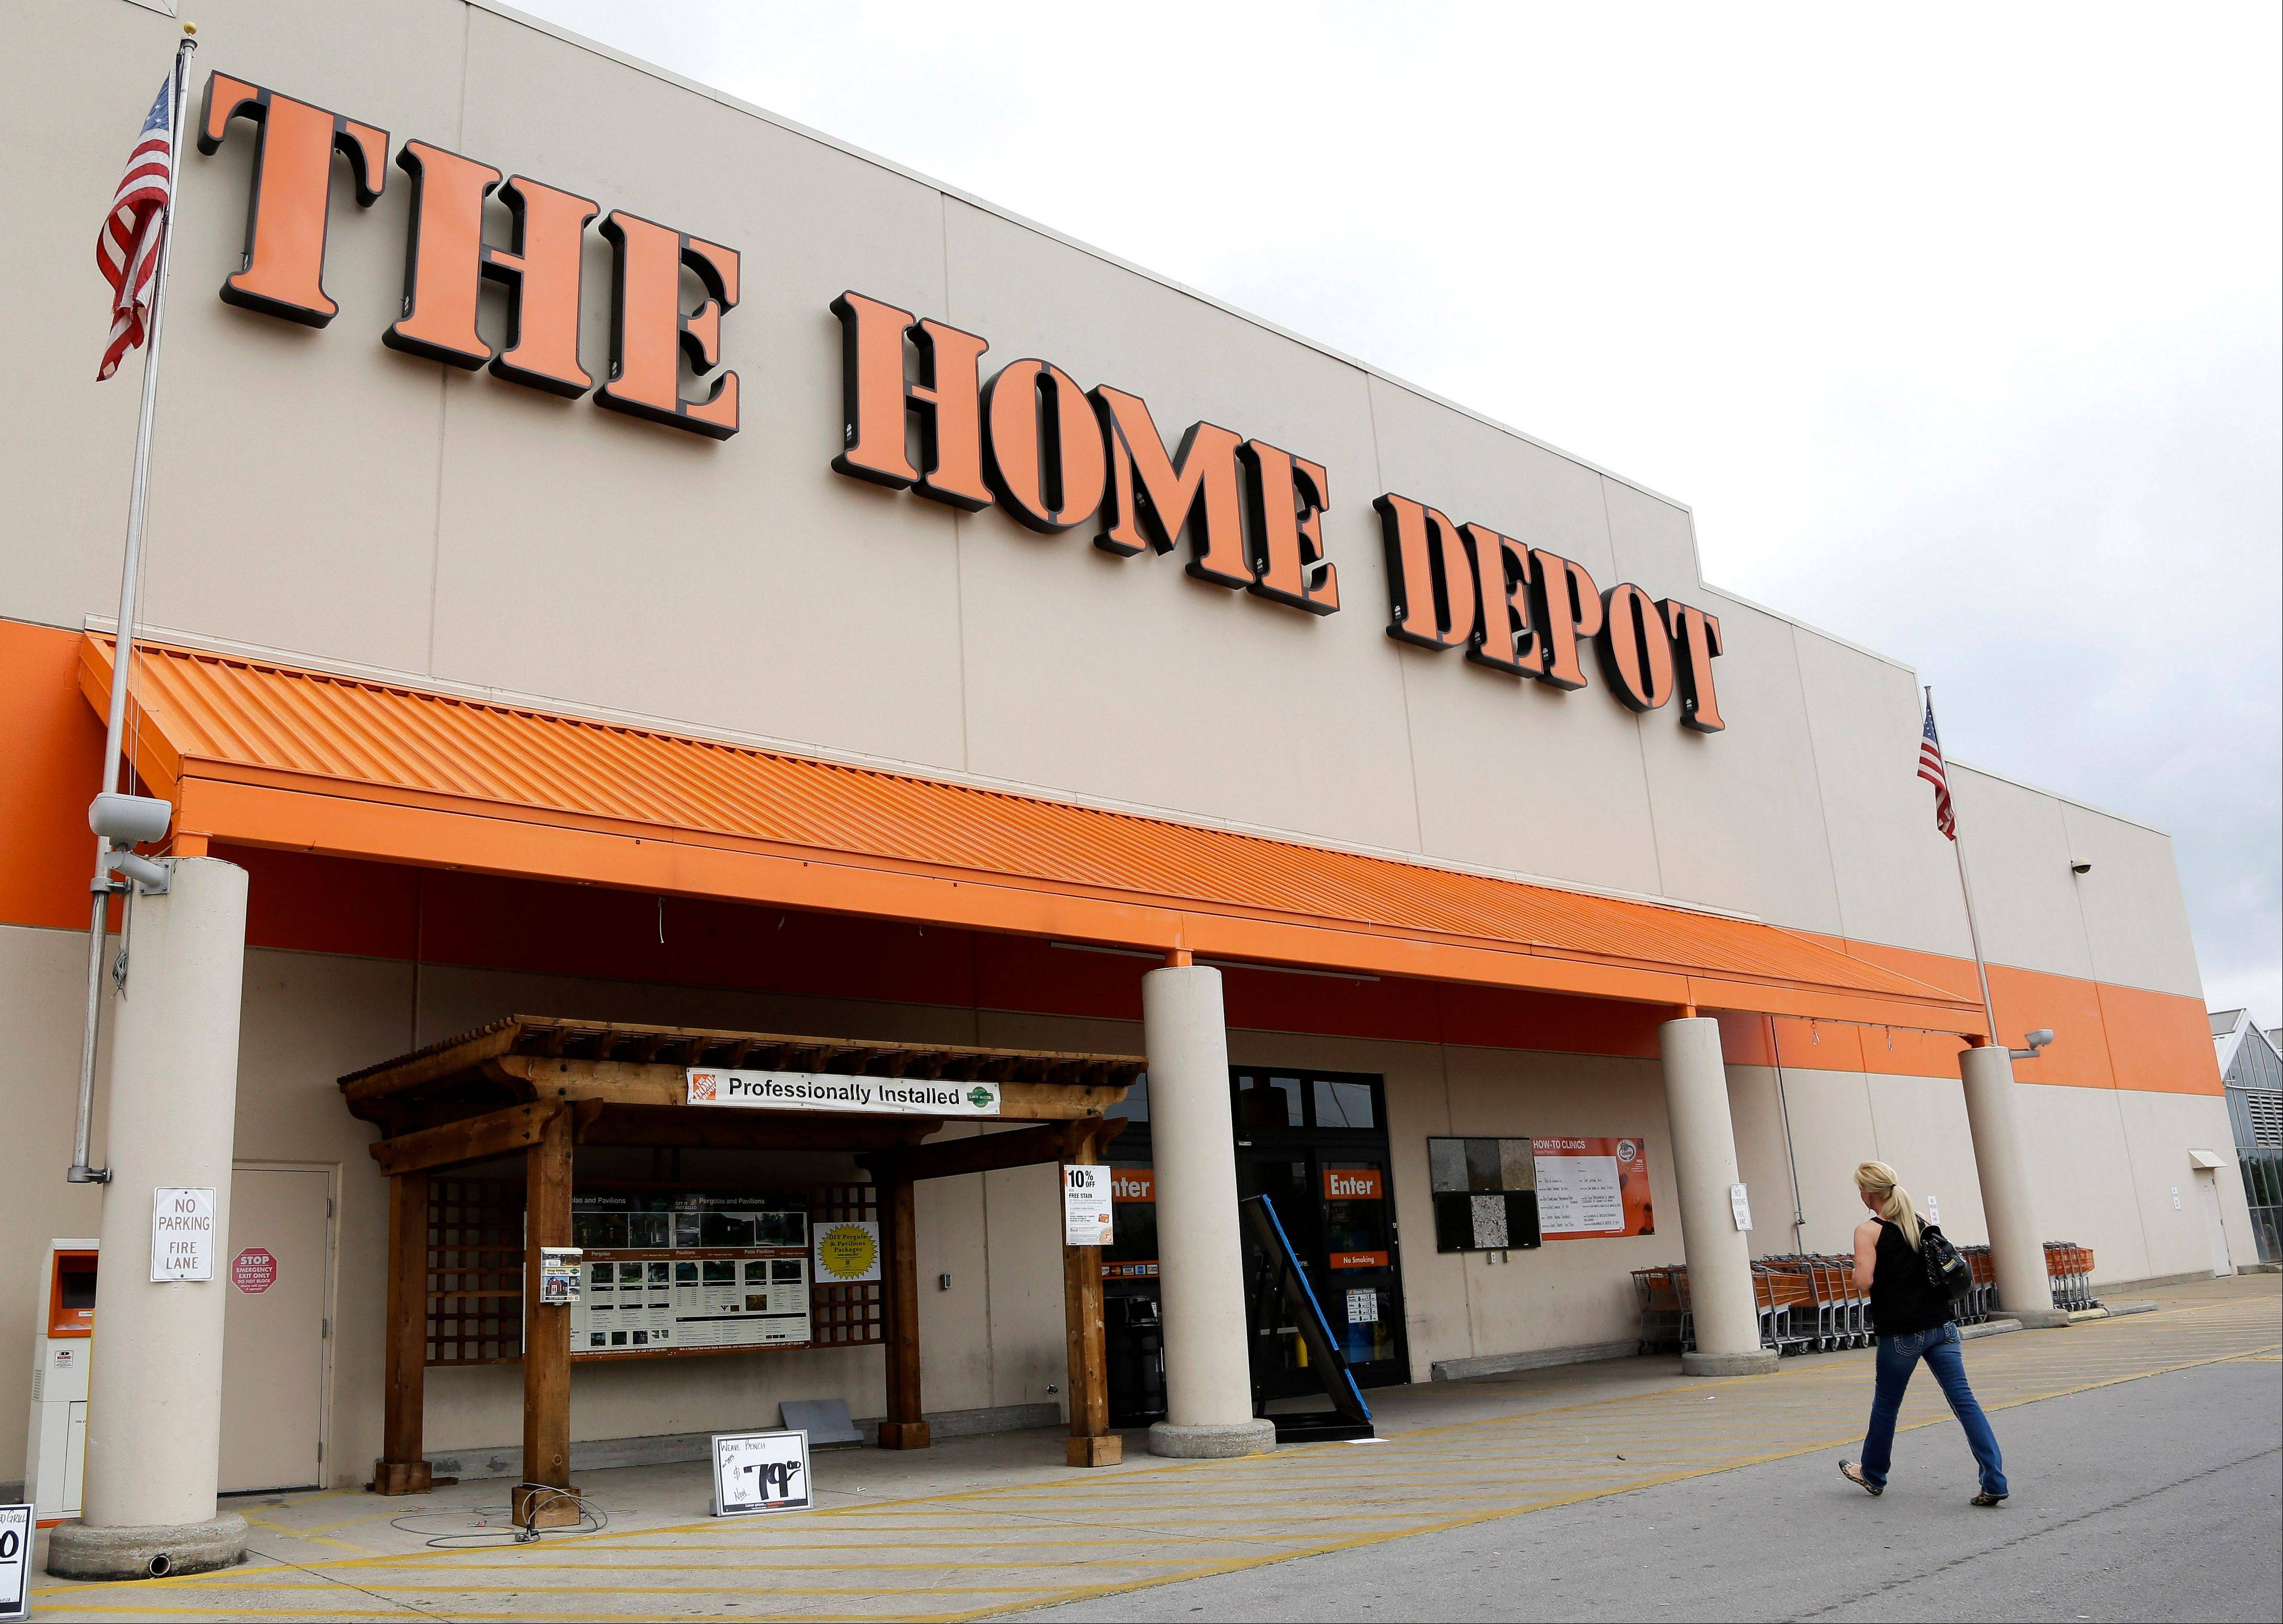 Home Depot Inc., the largest U.S. home improvement retailer, said Tuesday its fiscal fourth-quarter net income surged 32 percent, beating expectations, helped by strong U.S. sales and the cleanup related to Superstorm Sandy. This follows smaller rival Lowe�s Cos. results Monday, which also beat expectations.